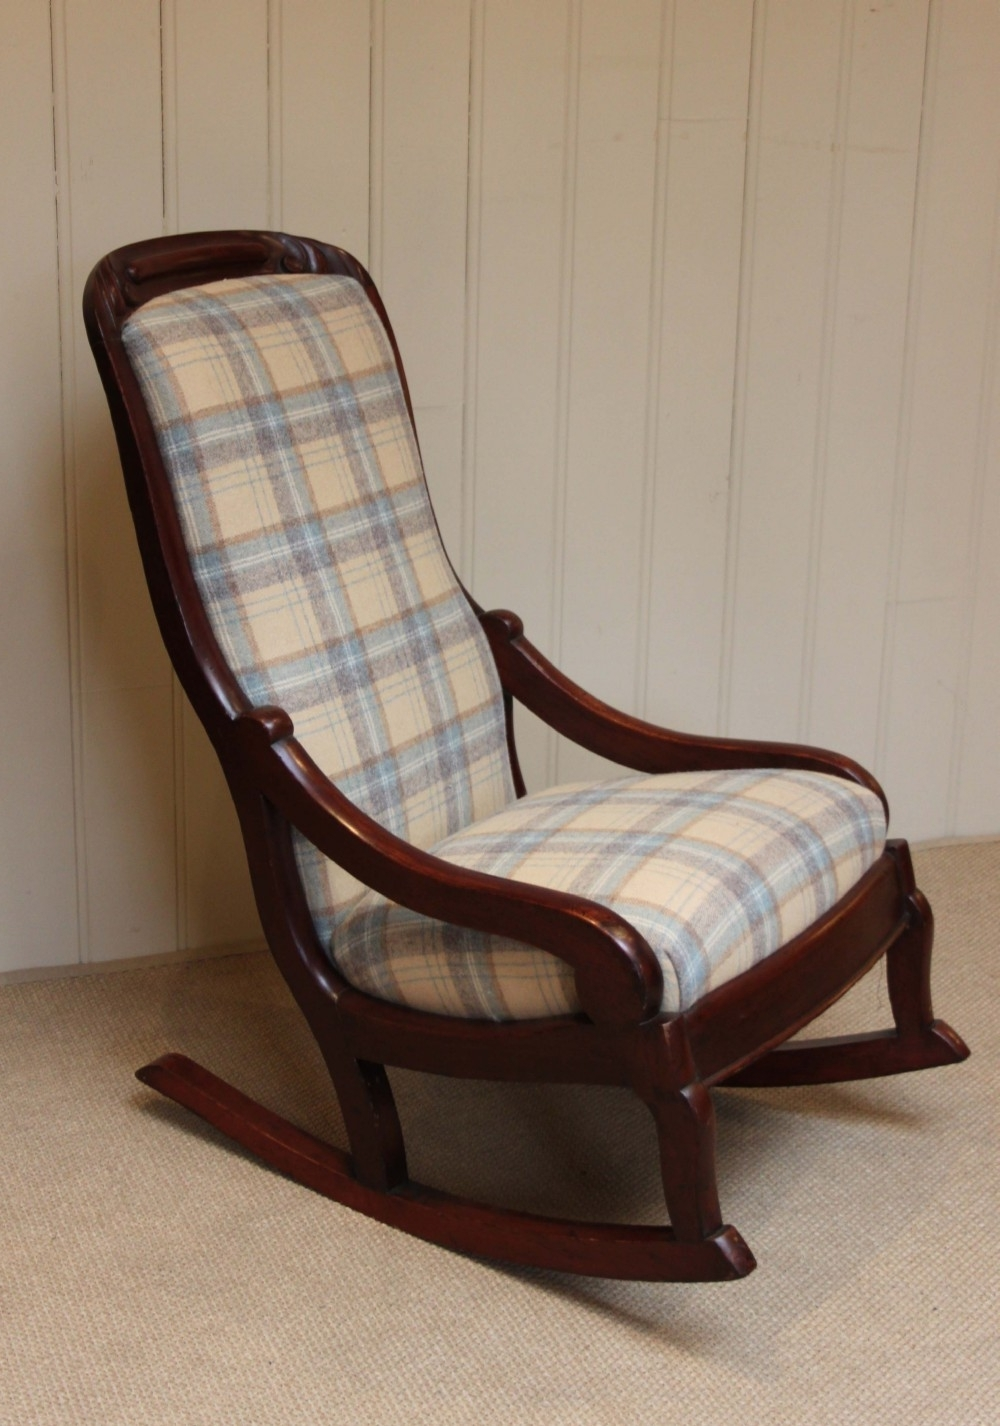 Sellingantiques With Regard To Fashionable Victorian Rocking Chairs (View 5 of 20)